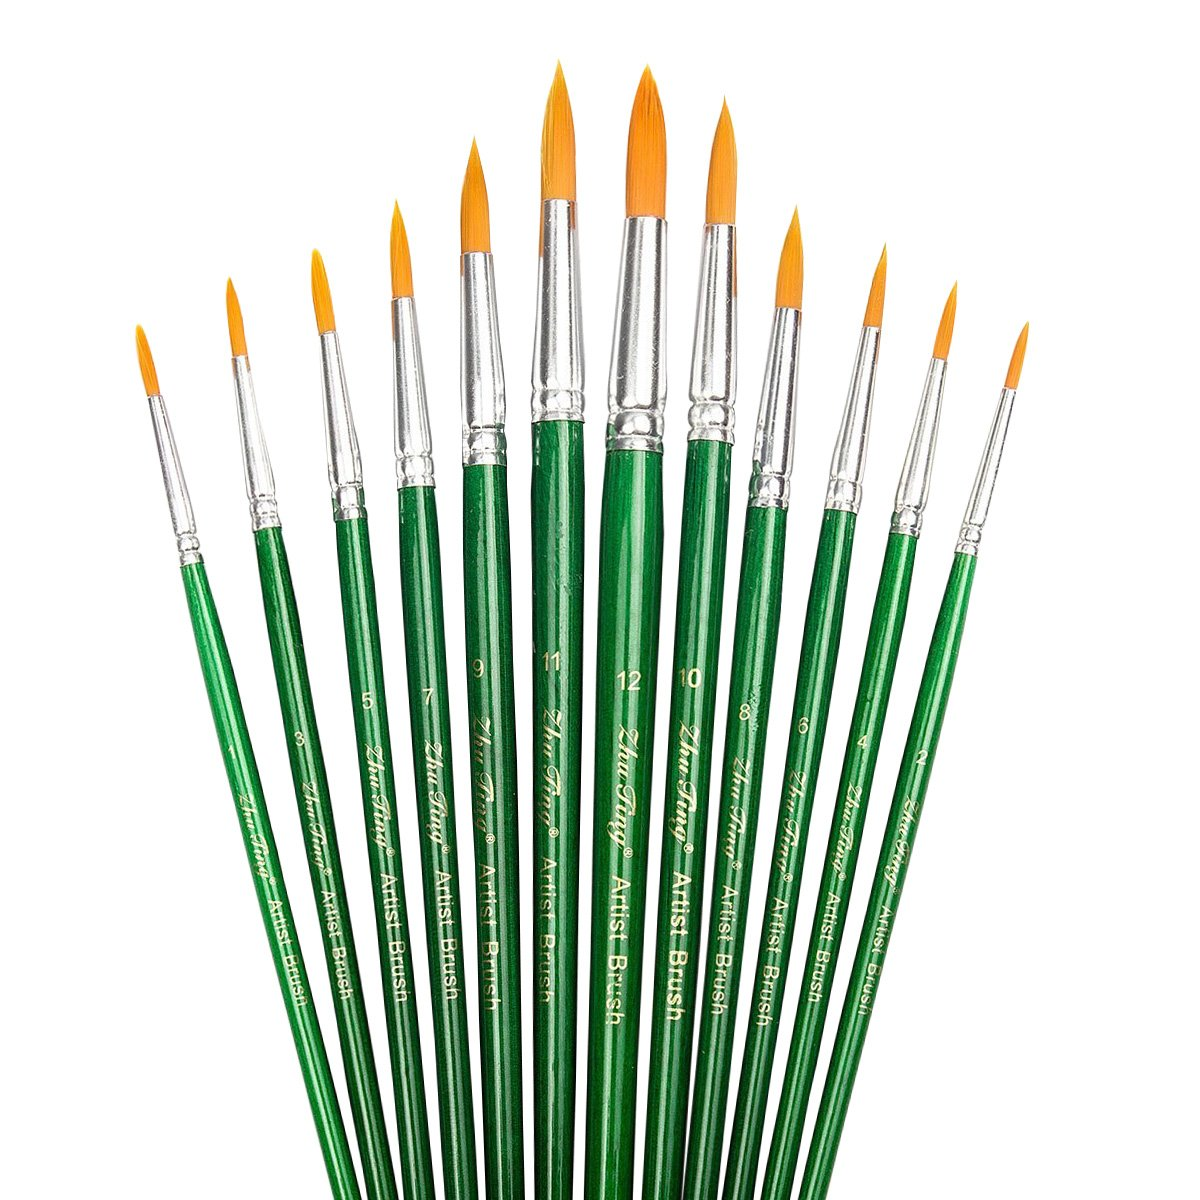 StarVast Painting Brushes, 12pcs Professional Pointed Acrylic Paint Brush Set for Watercolor/Oil/Acrylic/Crafts/Rock/Nail/Face Painting and Gouache